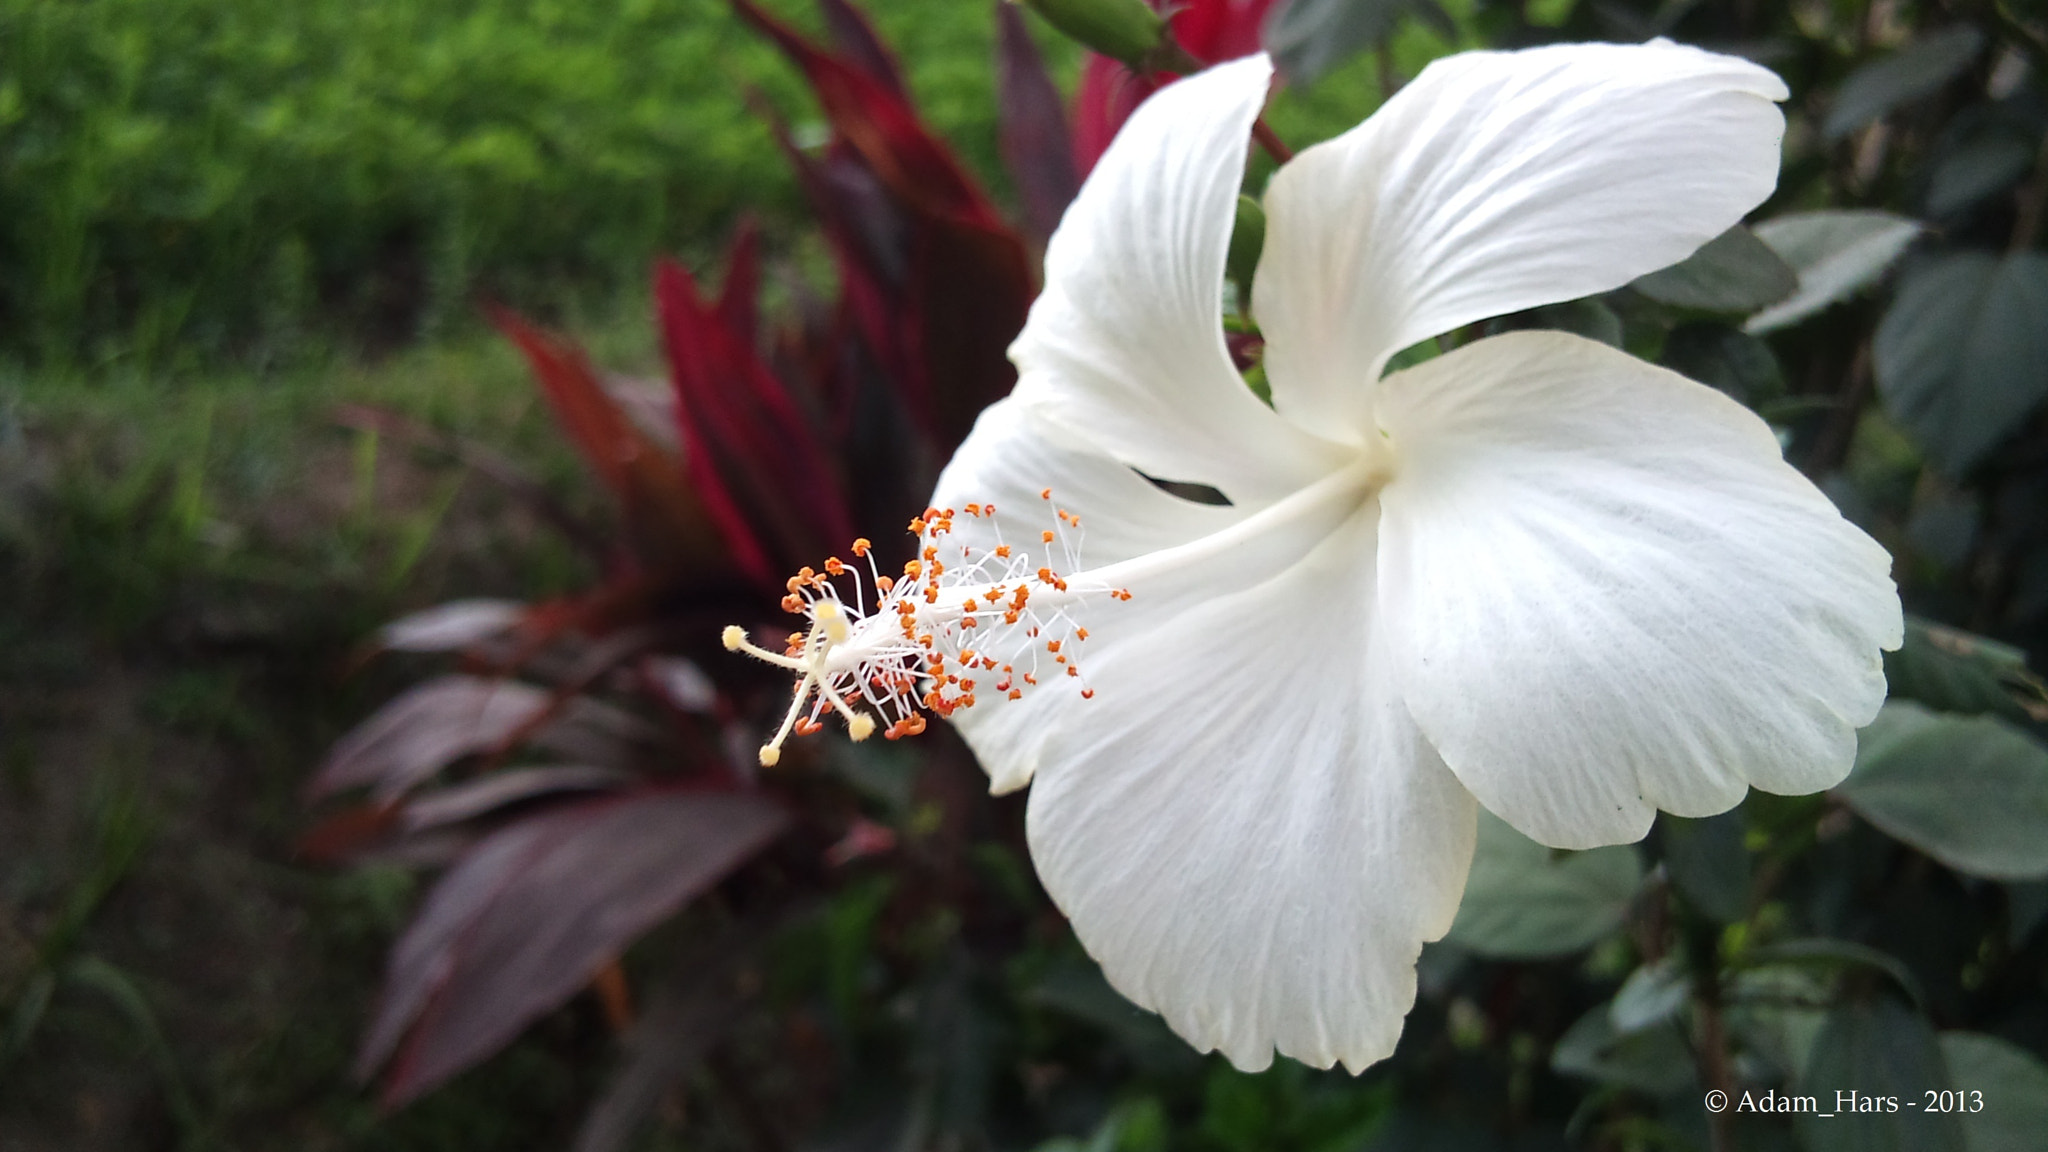 Photograph The White Hibiscus by Adam Hars on 500px